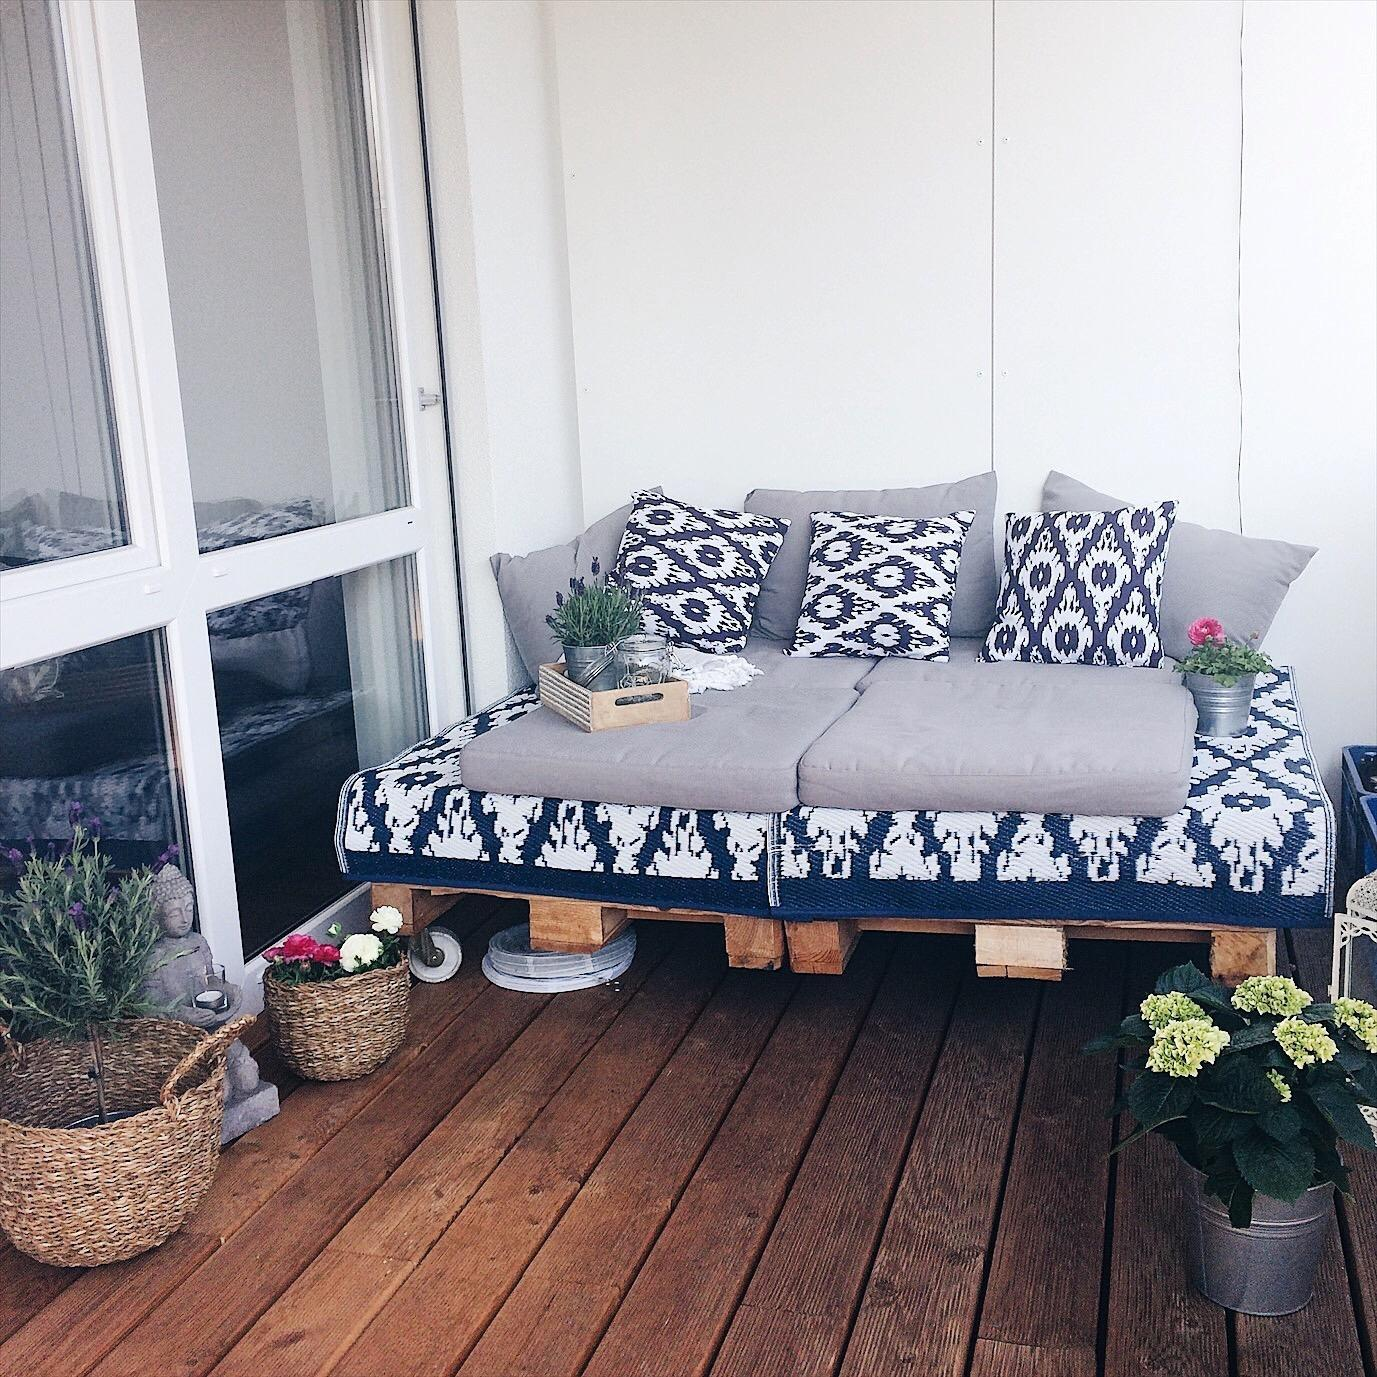 Hello balcony  fav spot balcony outdoorliving lounge diy couchstyle  7429ffc4 1b9a 4d20 b9a9 7085bfad6fe0